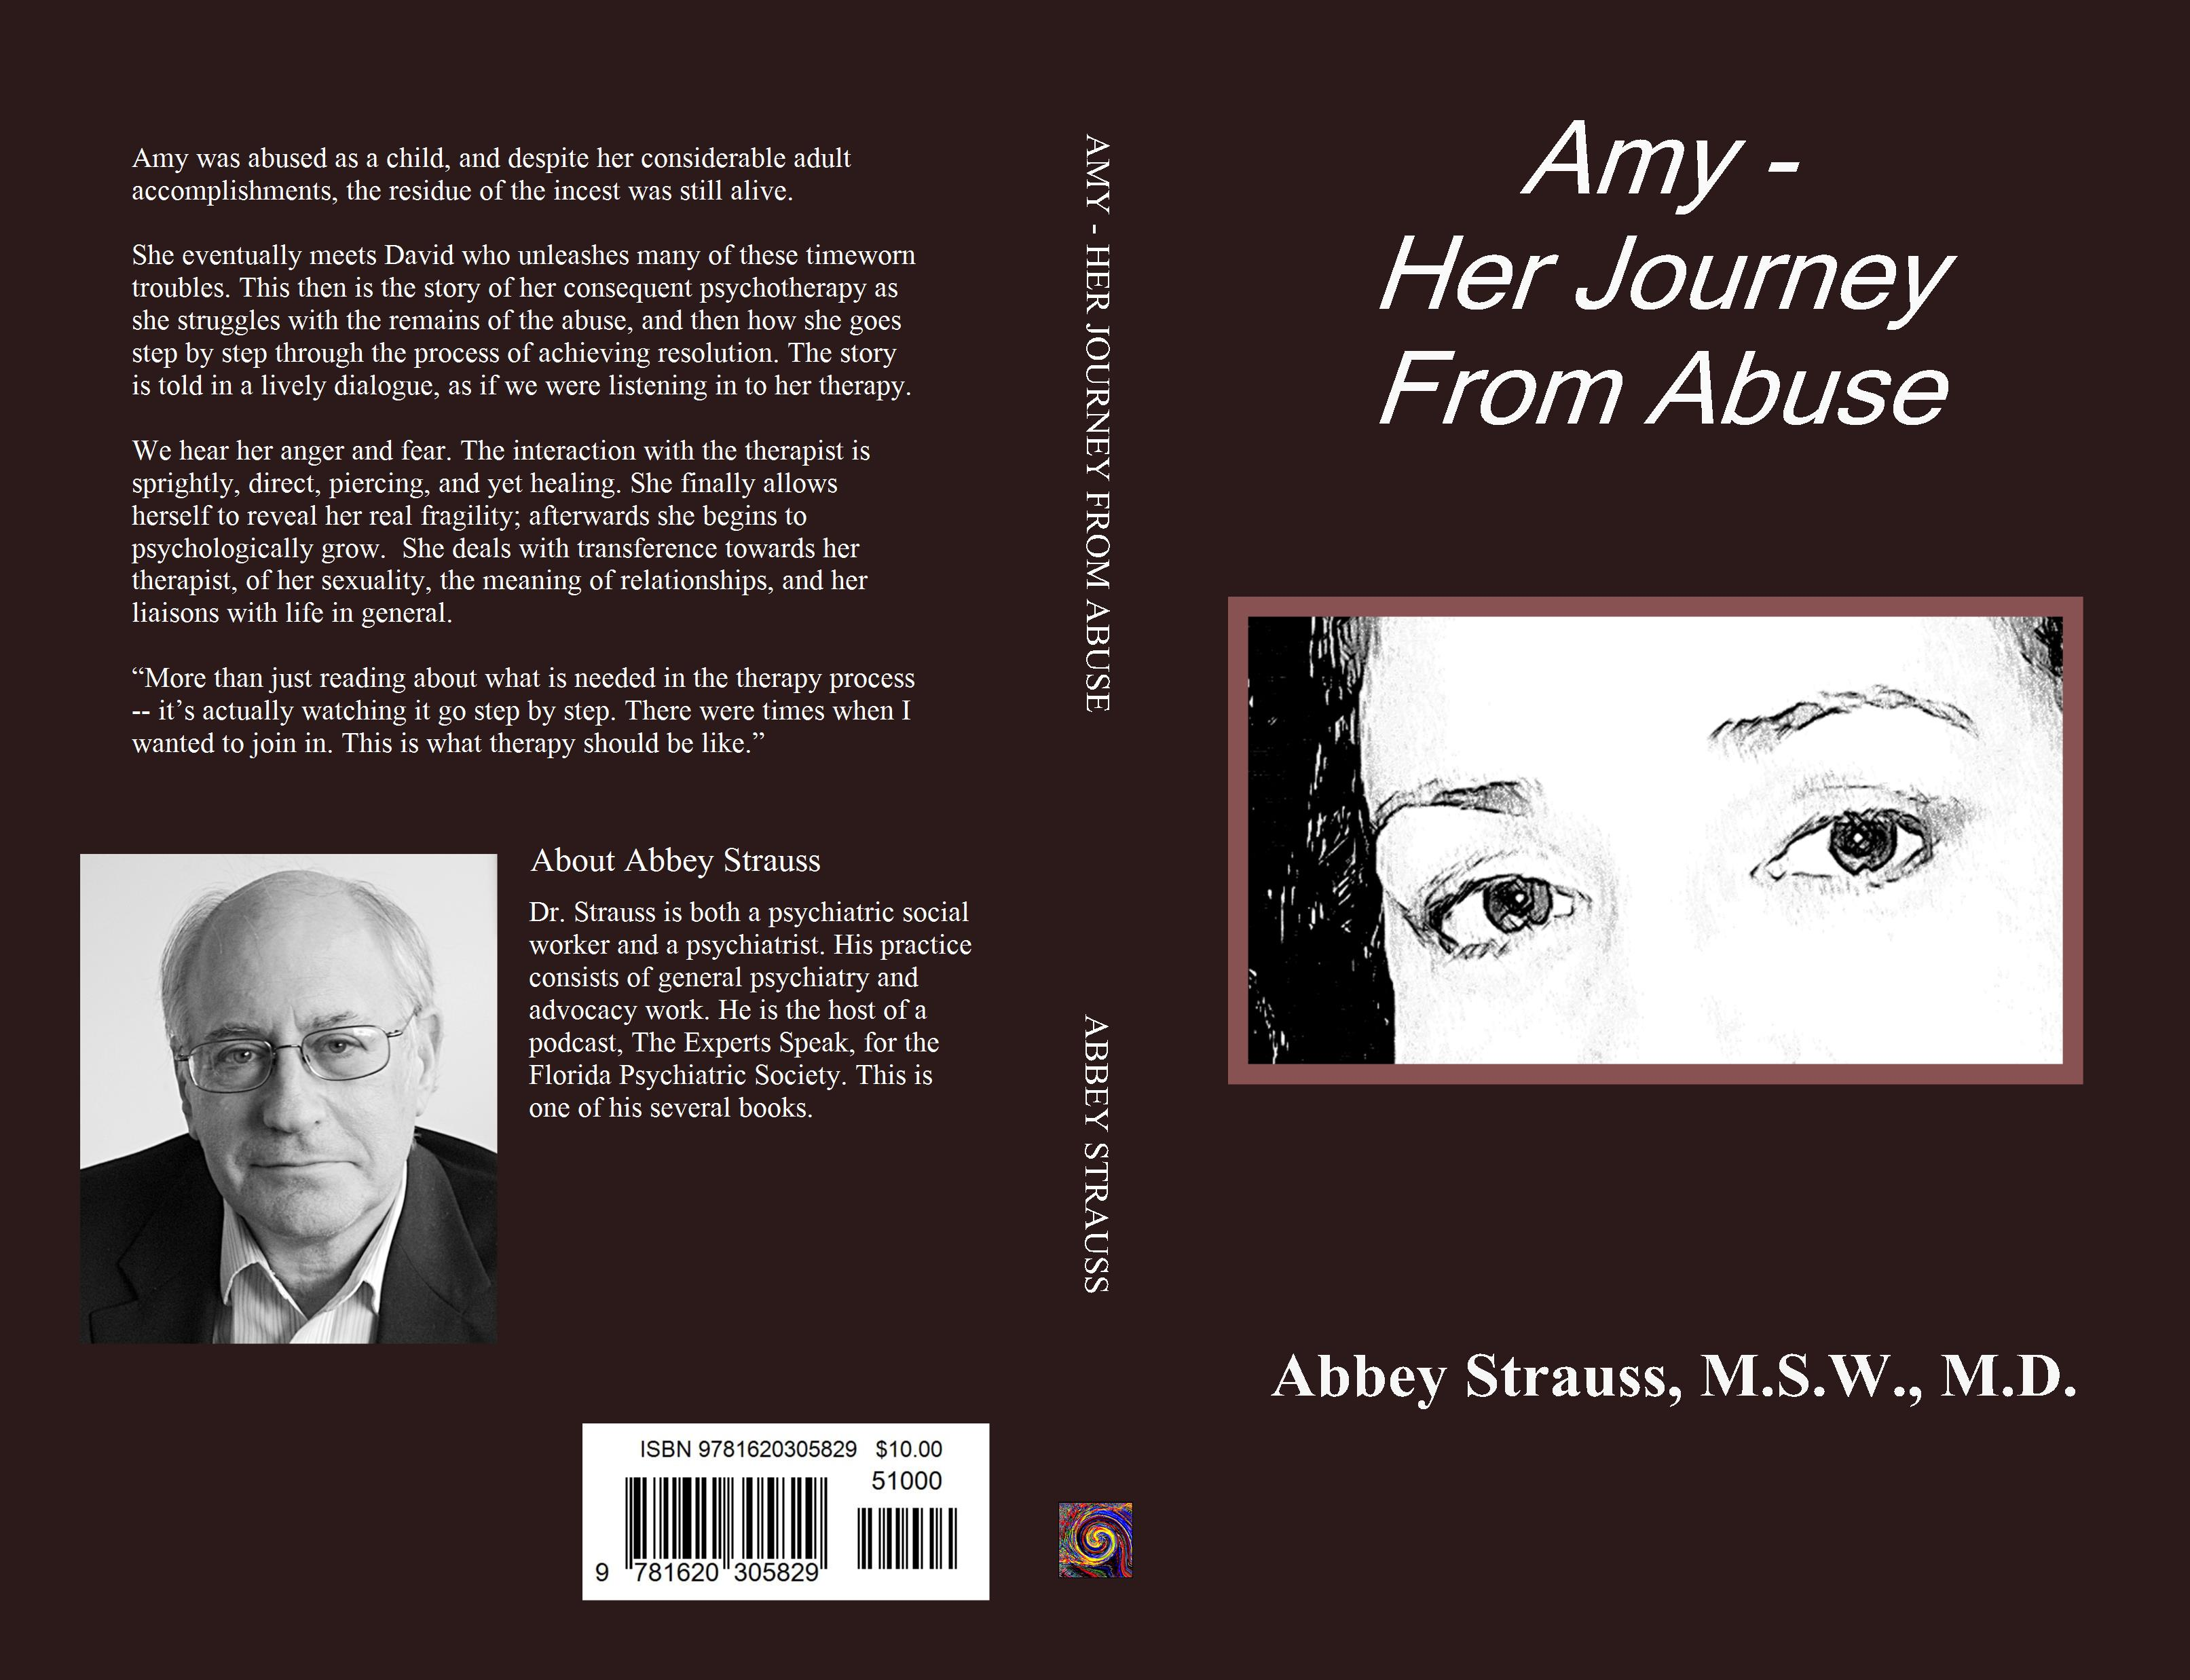 Amy - Her Journey From Abuse by Abbey Strauss, M S W , M D